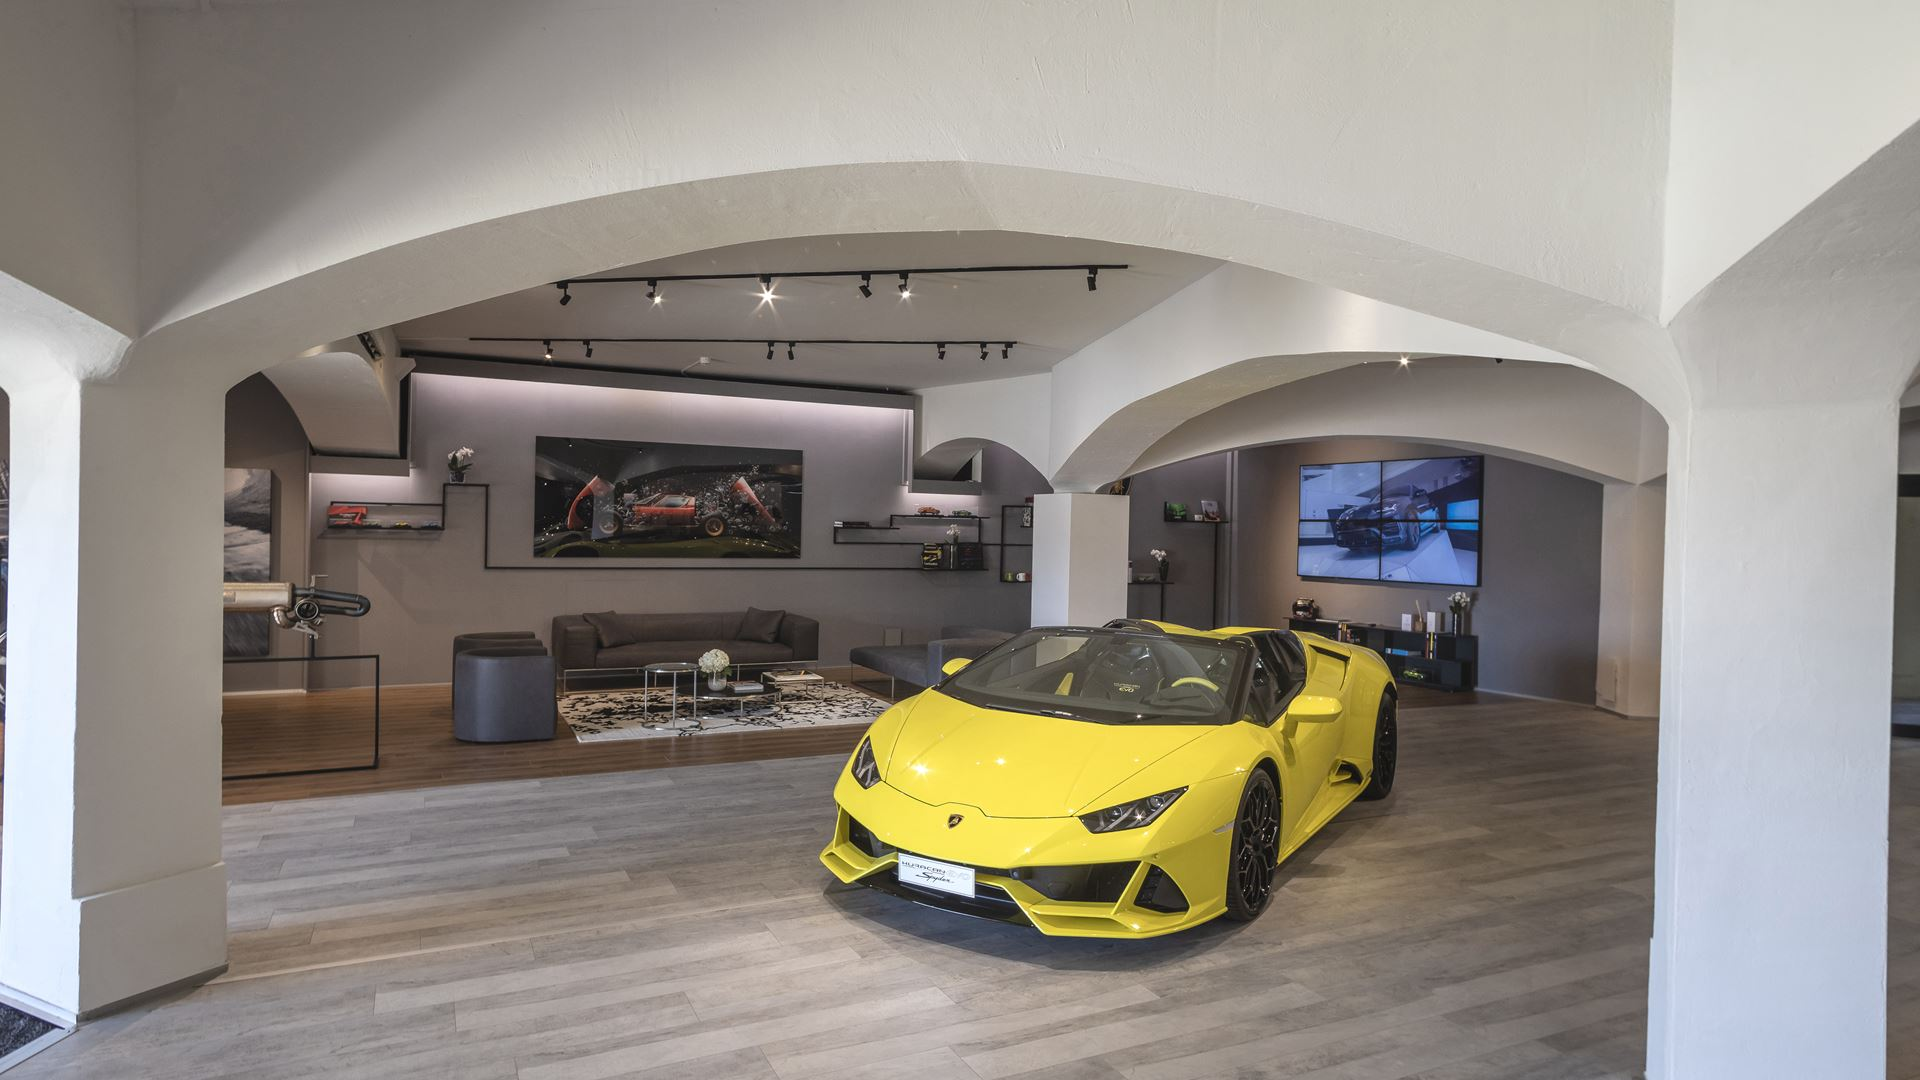 Lamborghini Lounge in Porto Cervo: exclusivity, lifestyle and product innovations, until September - Image 4